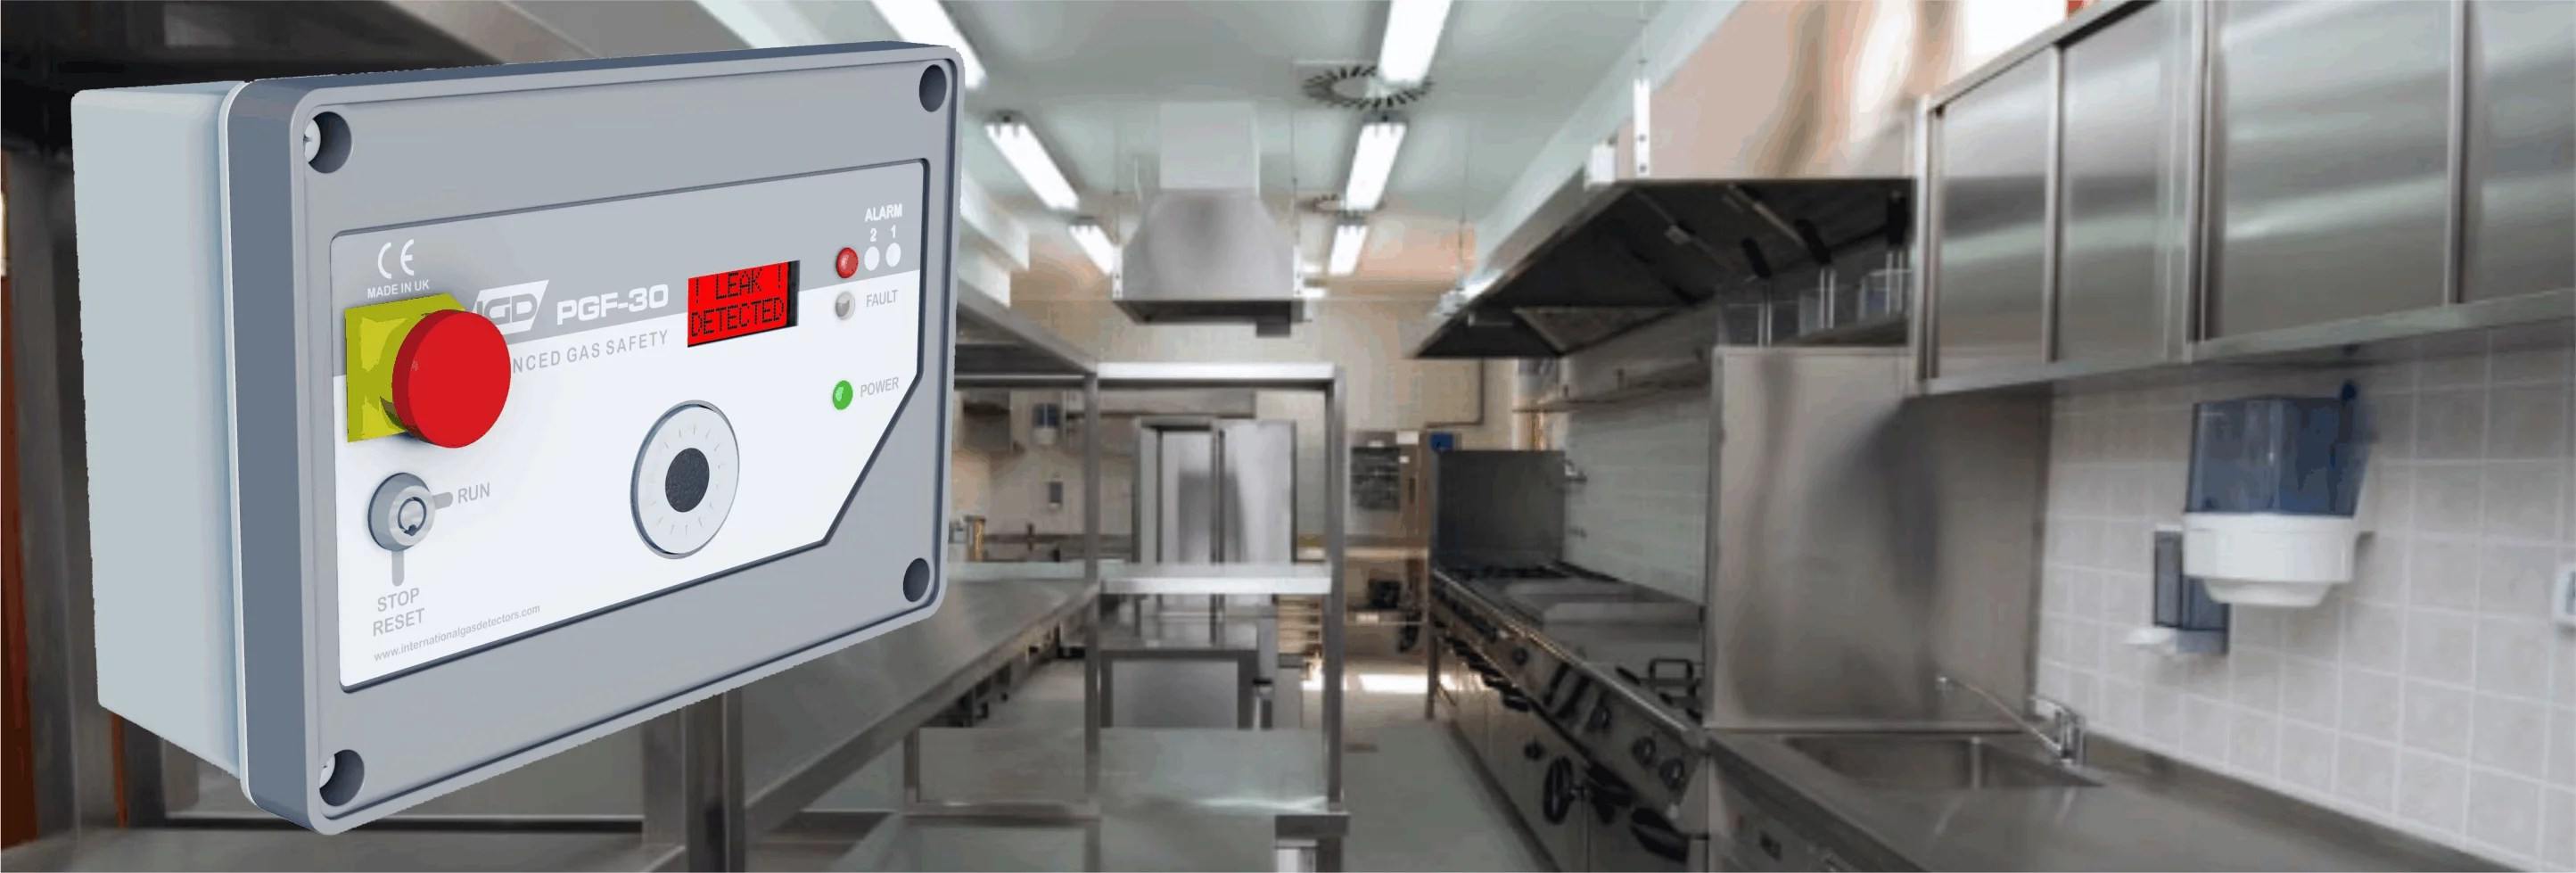 Gas Detection in mercial Kitchens Applications International